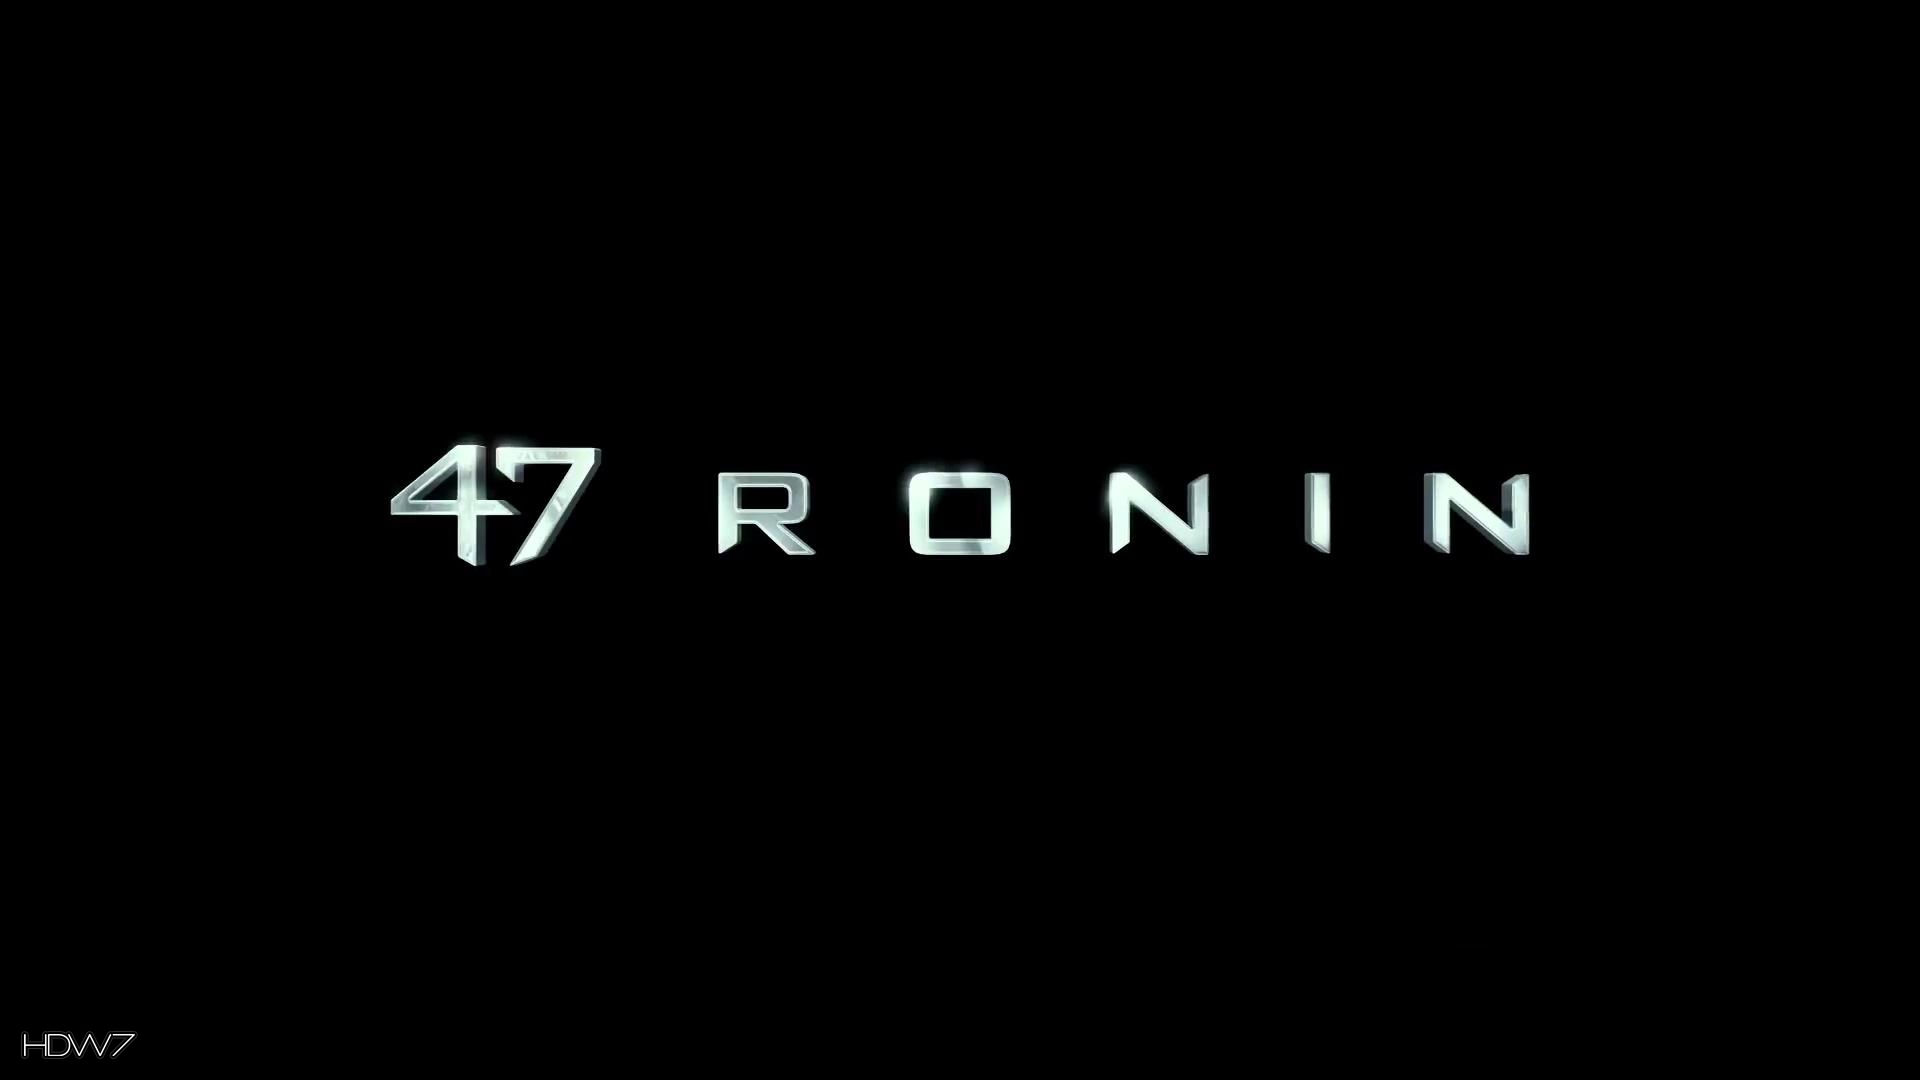 47 ronin logo wallpaper 1920x1080